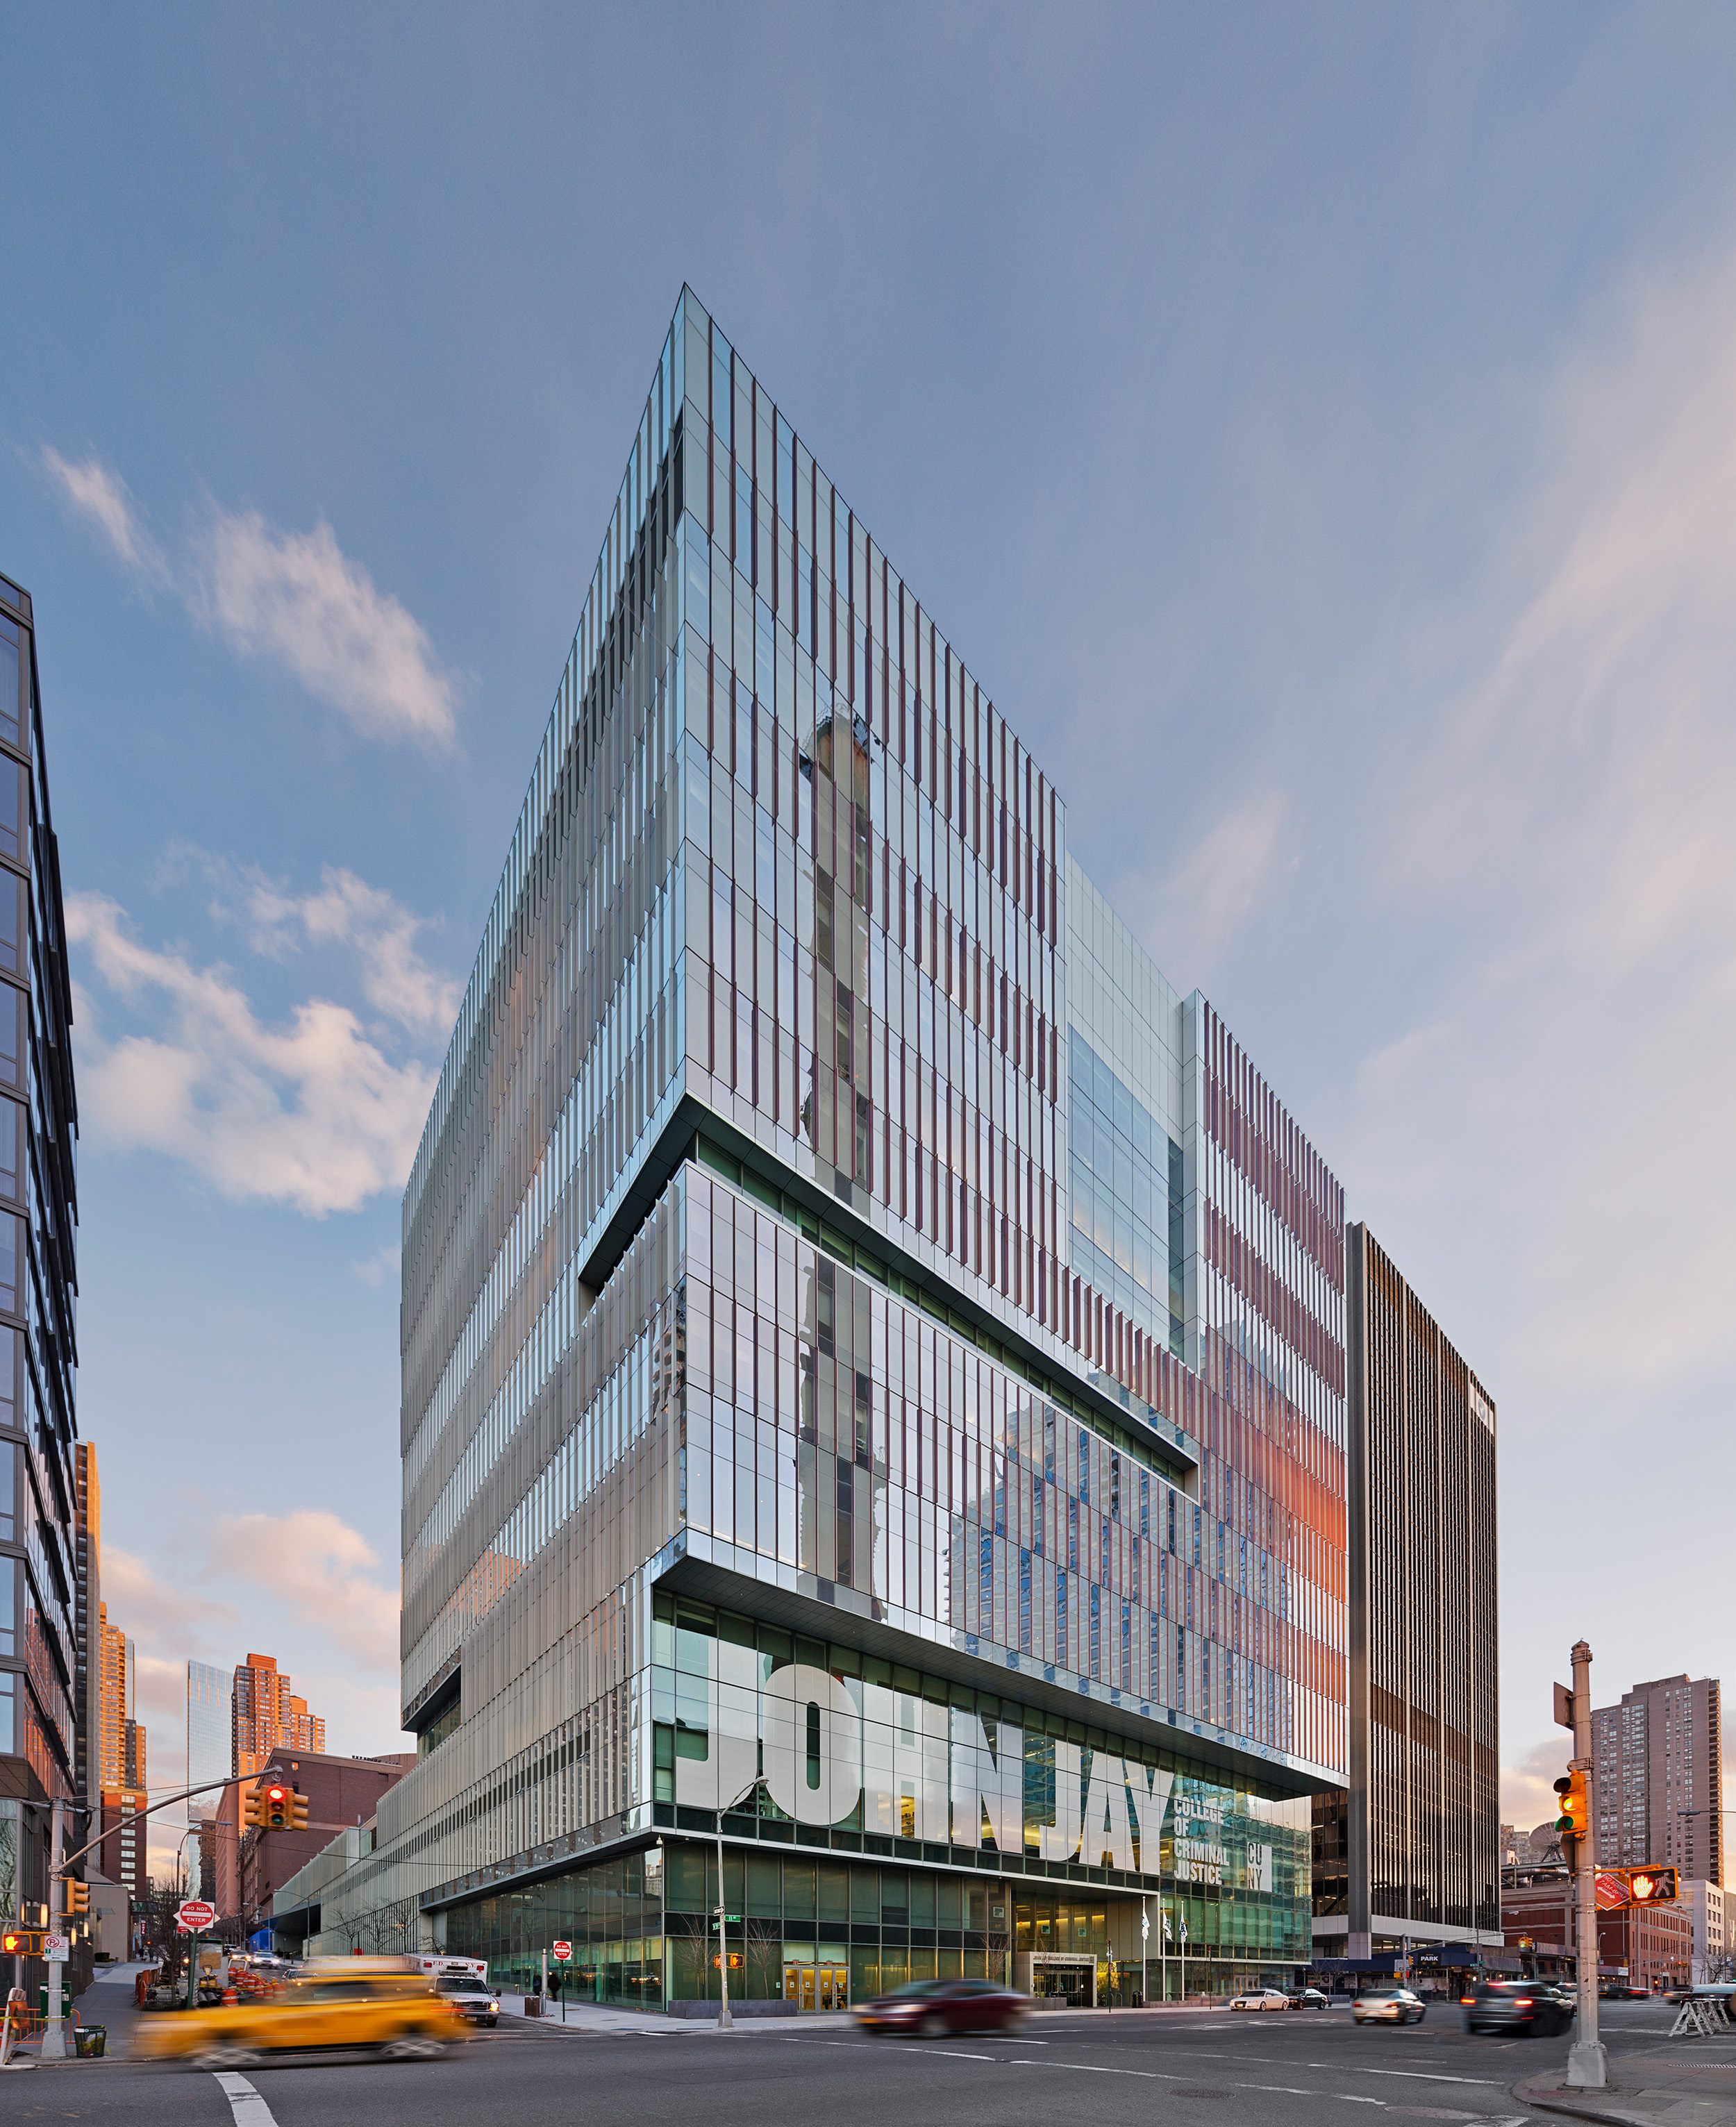 John Jay College of Criminal Justice  Skidmore, Owings & Merrill